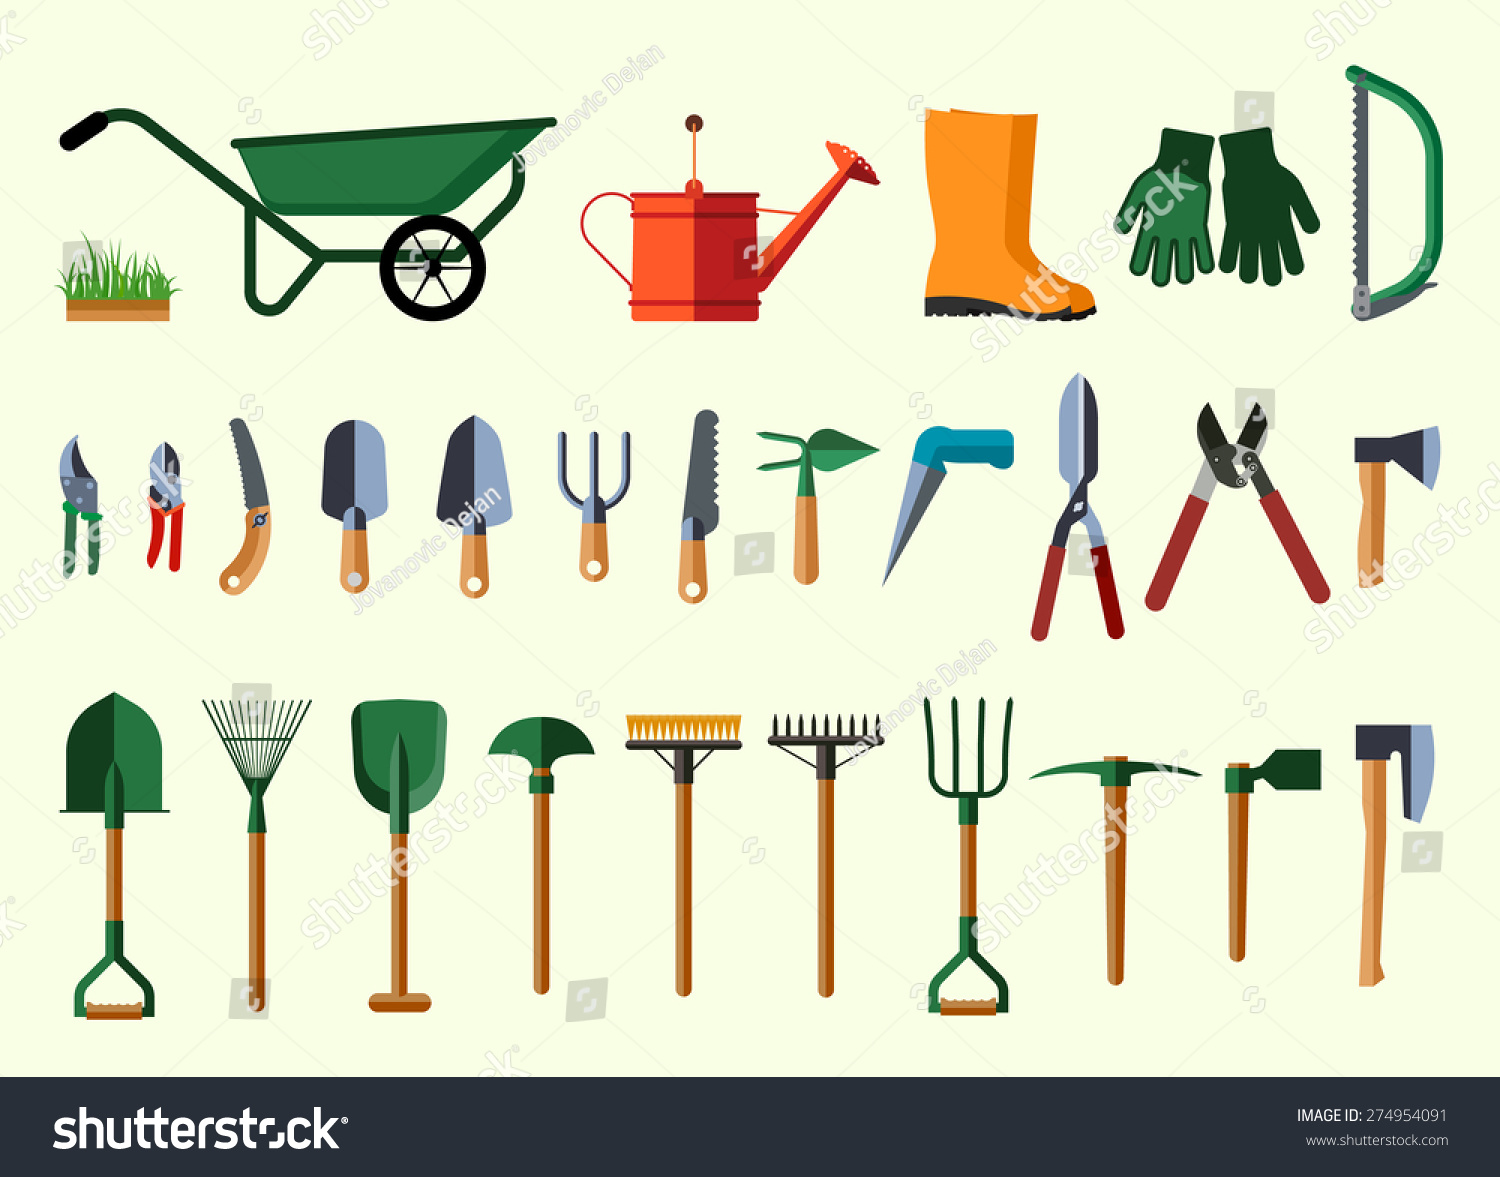 Set Various Gardening Items Garden Tools Stock Vector 274954091